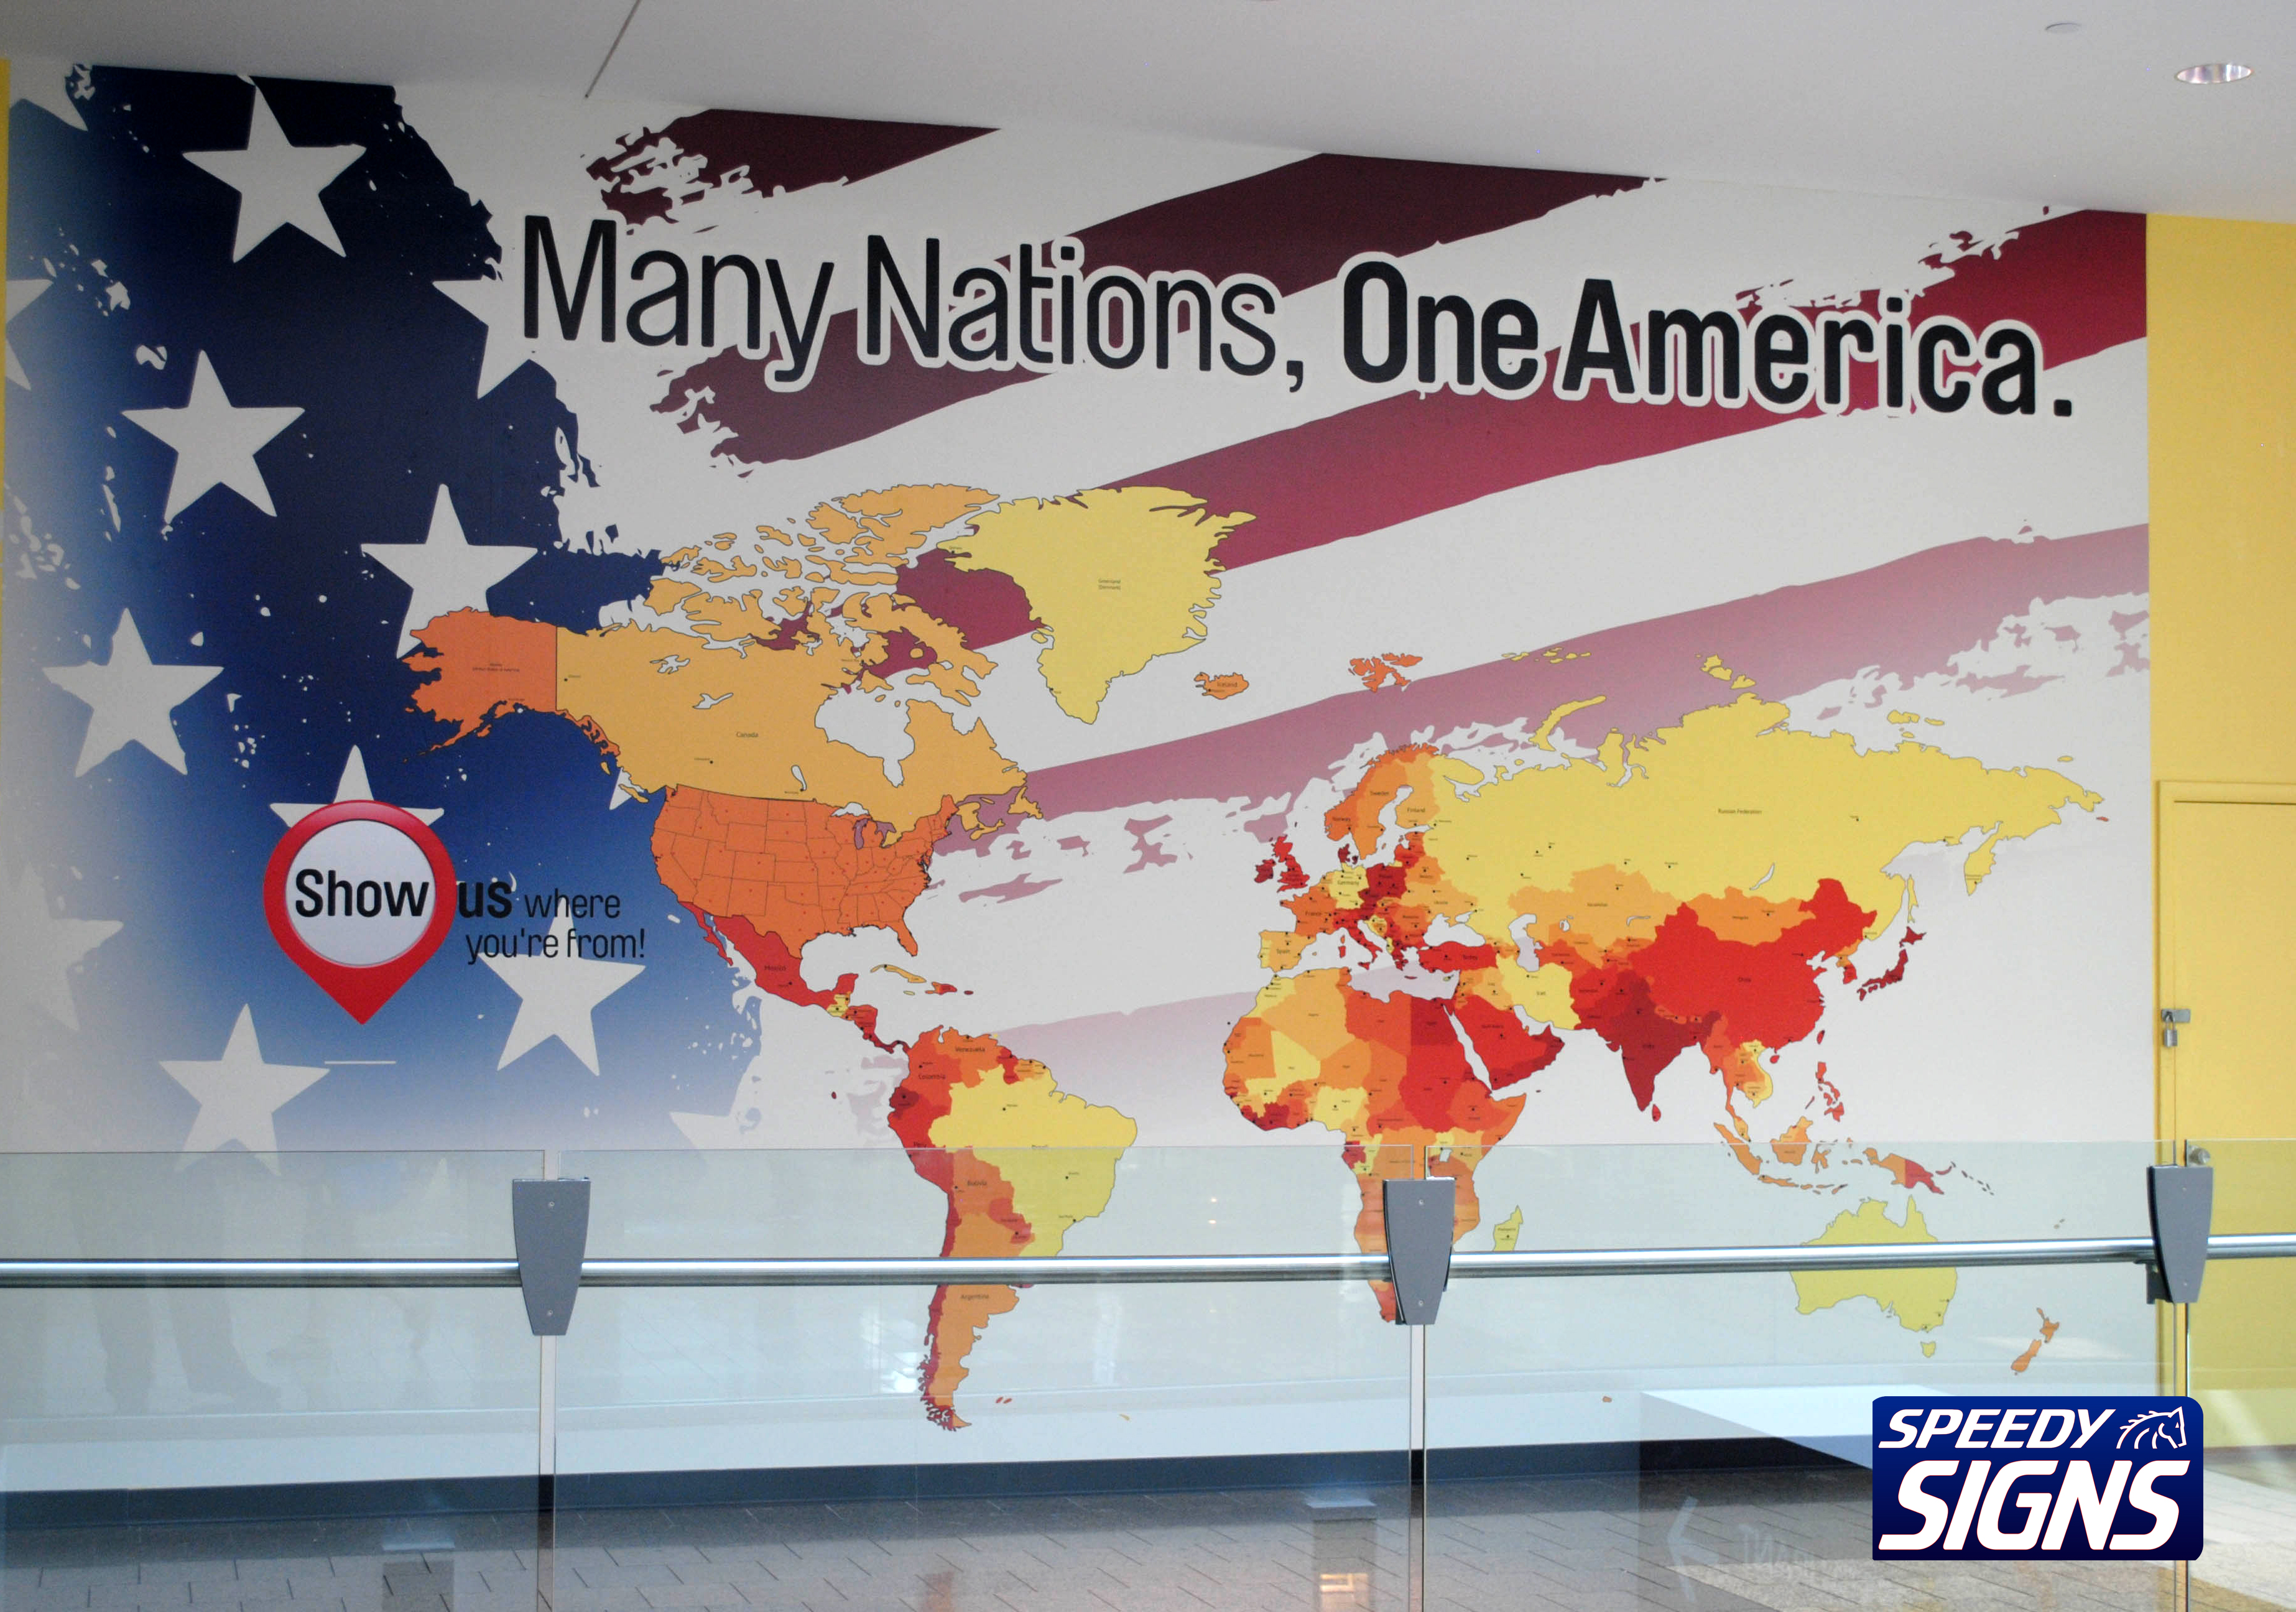 Speedy signs wall wraps many nations wall wrapg gumiabroncs Choice Image